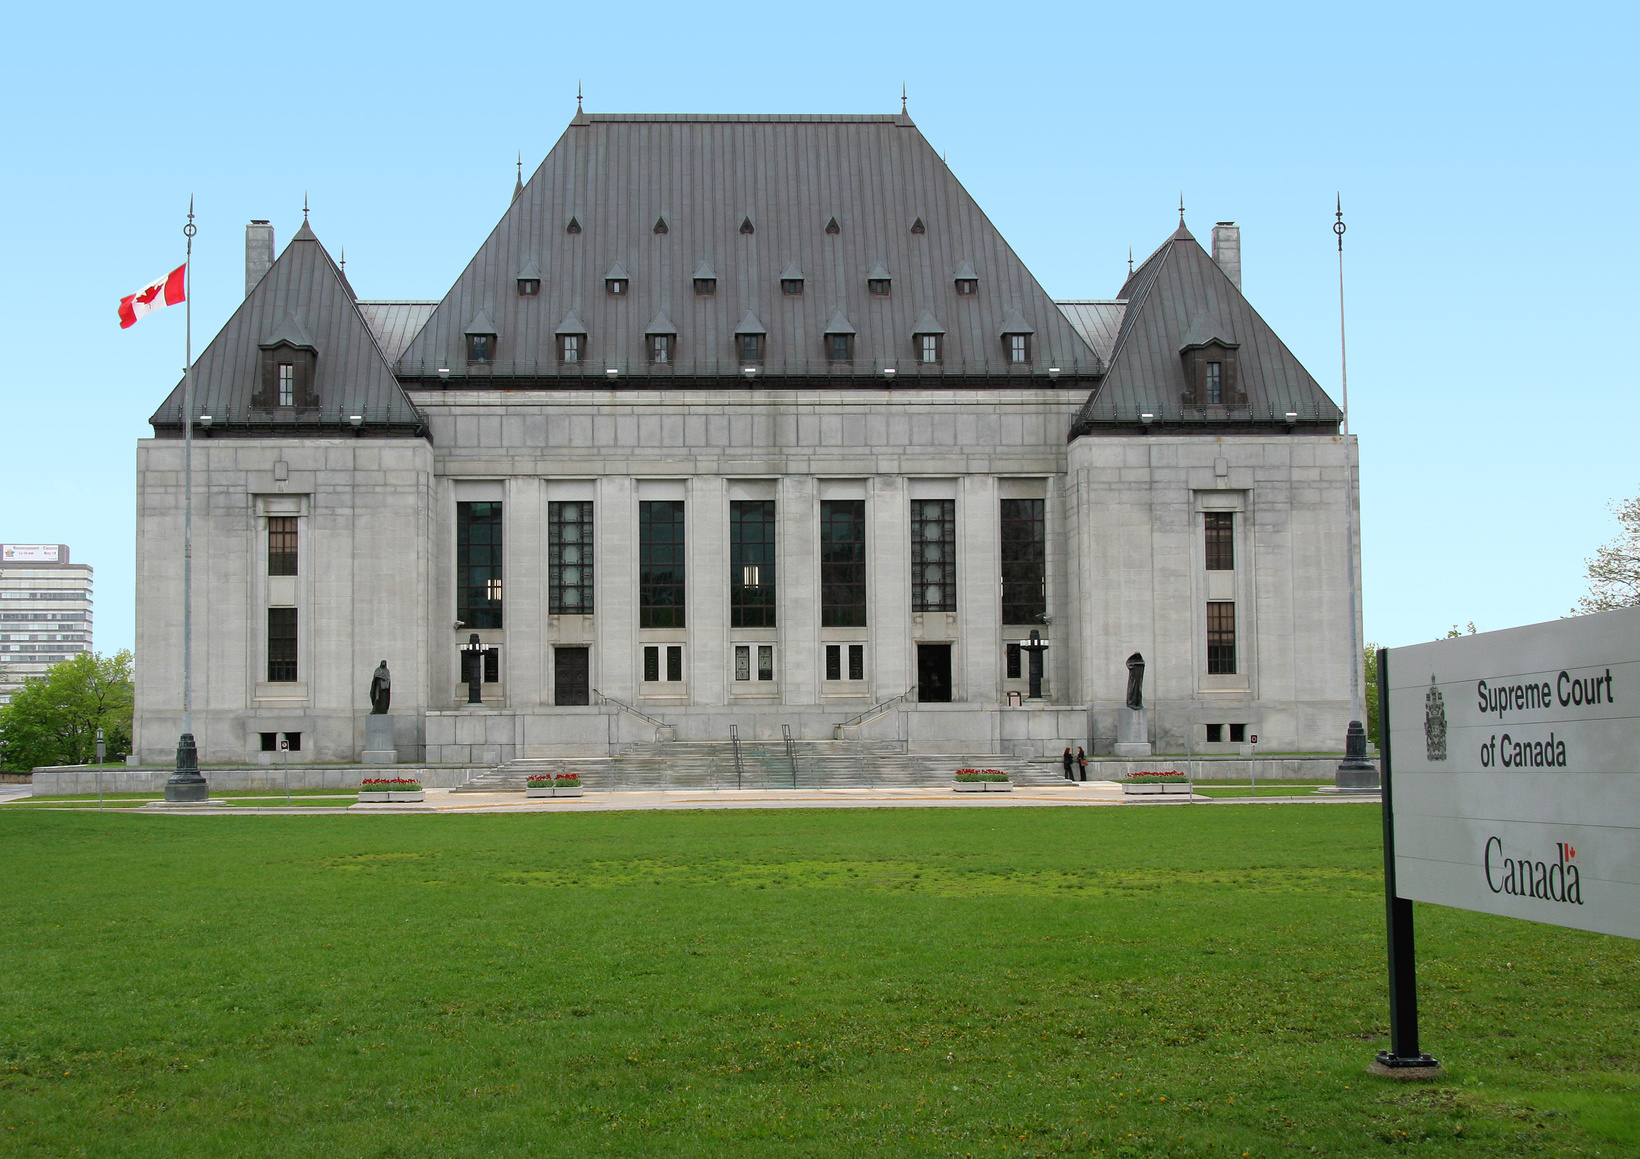 Fotolia_701557_supreme court of canada building_M